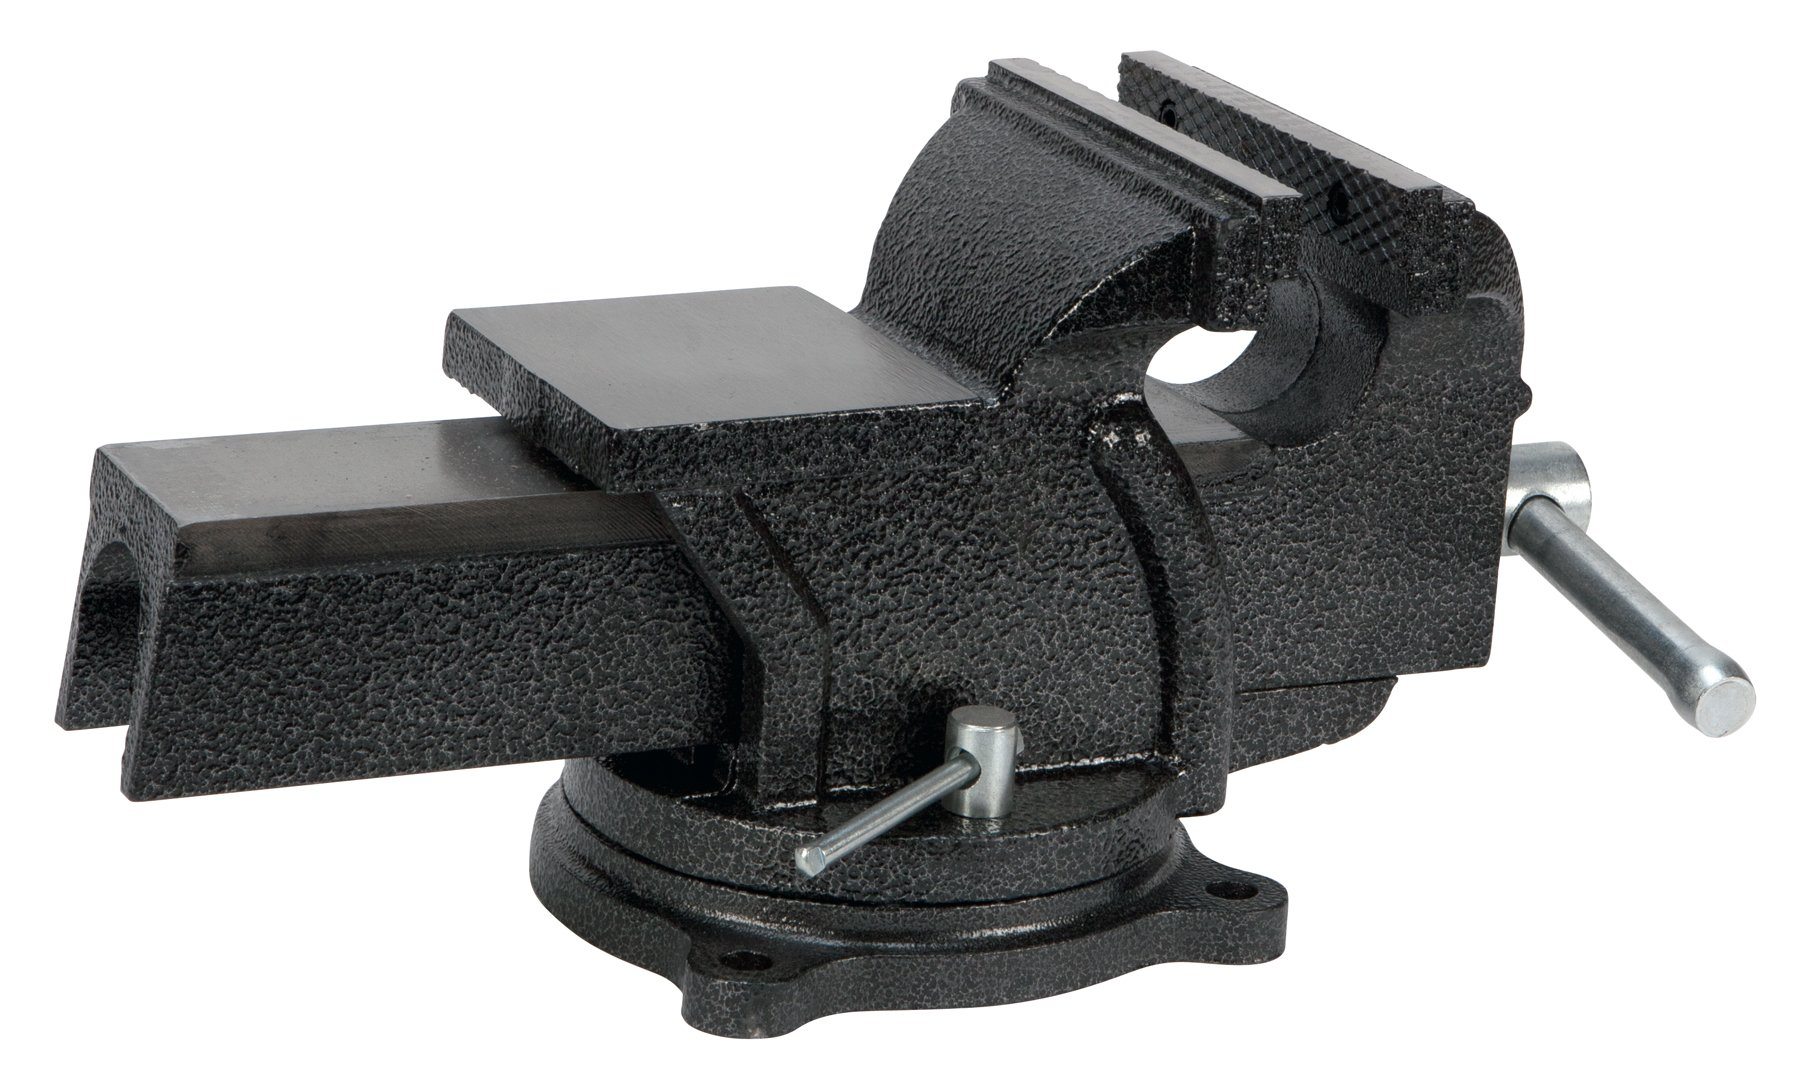 Performance Tool MV6 Hammer Tough 6-Inch Machinist Vise